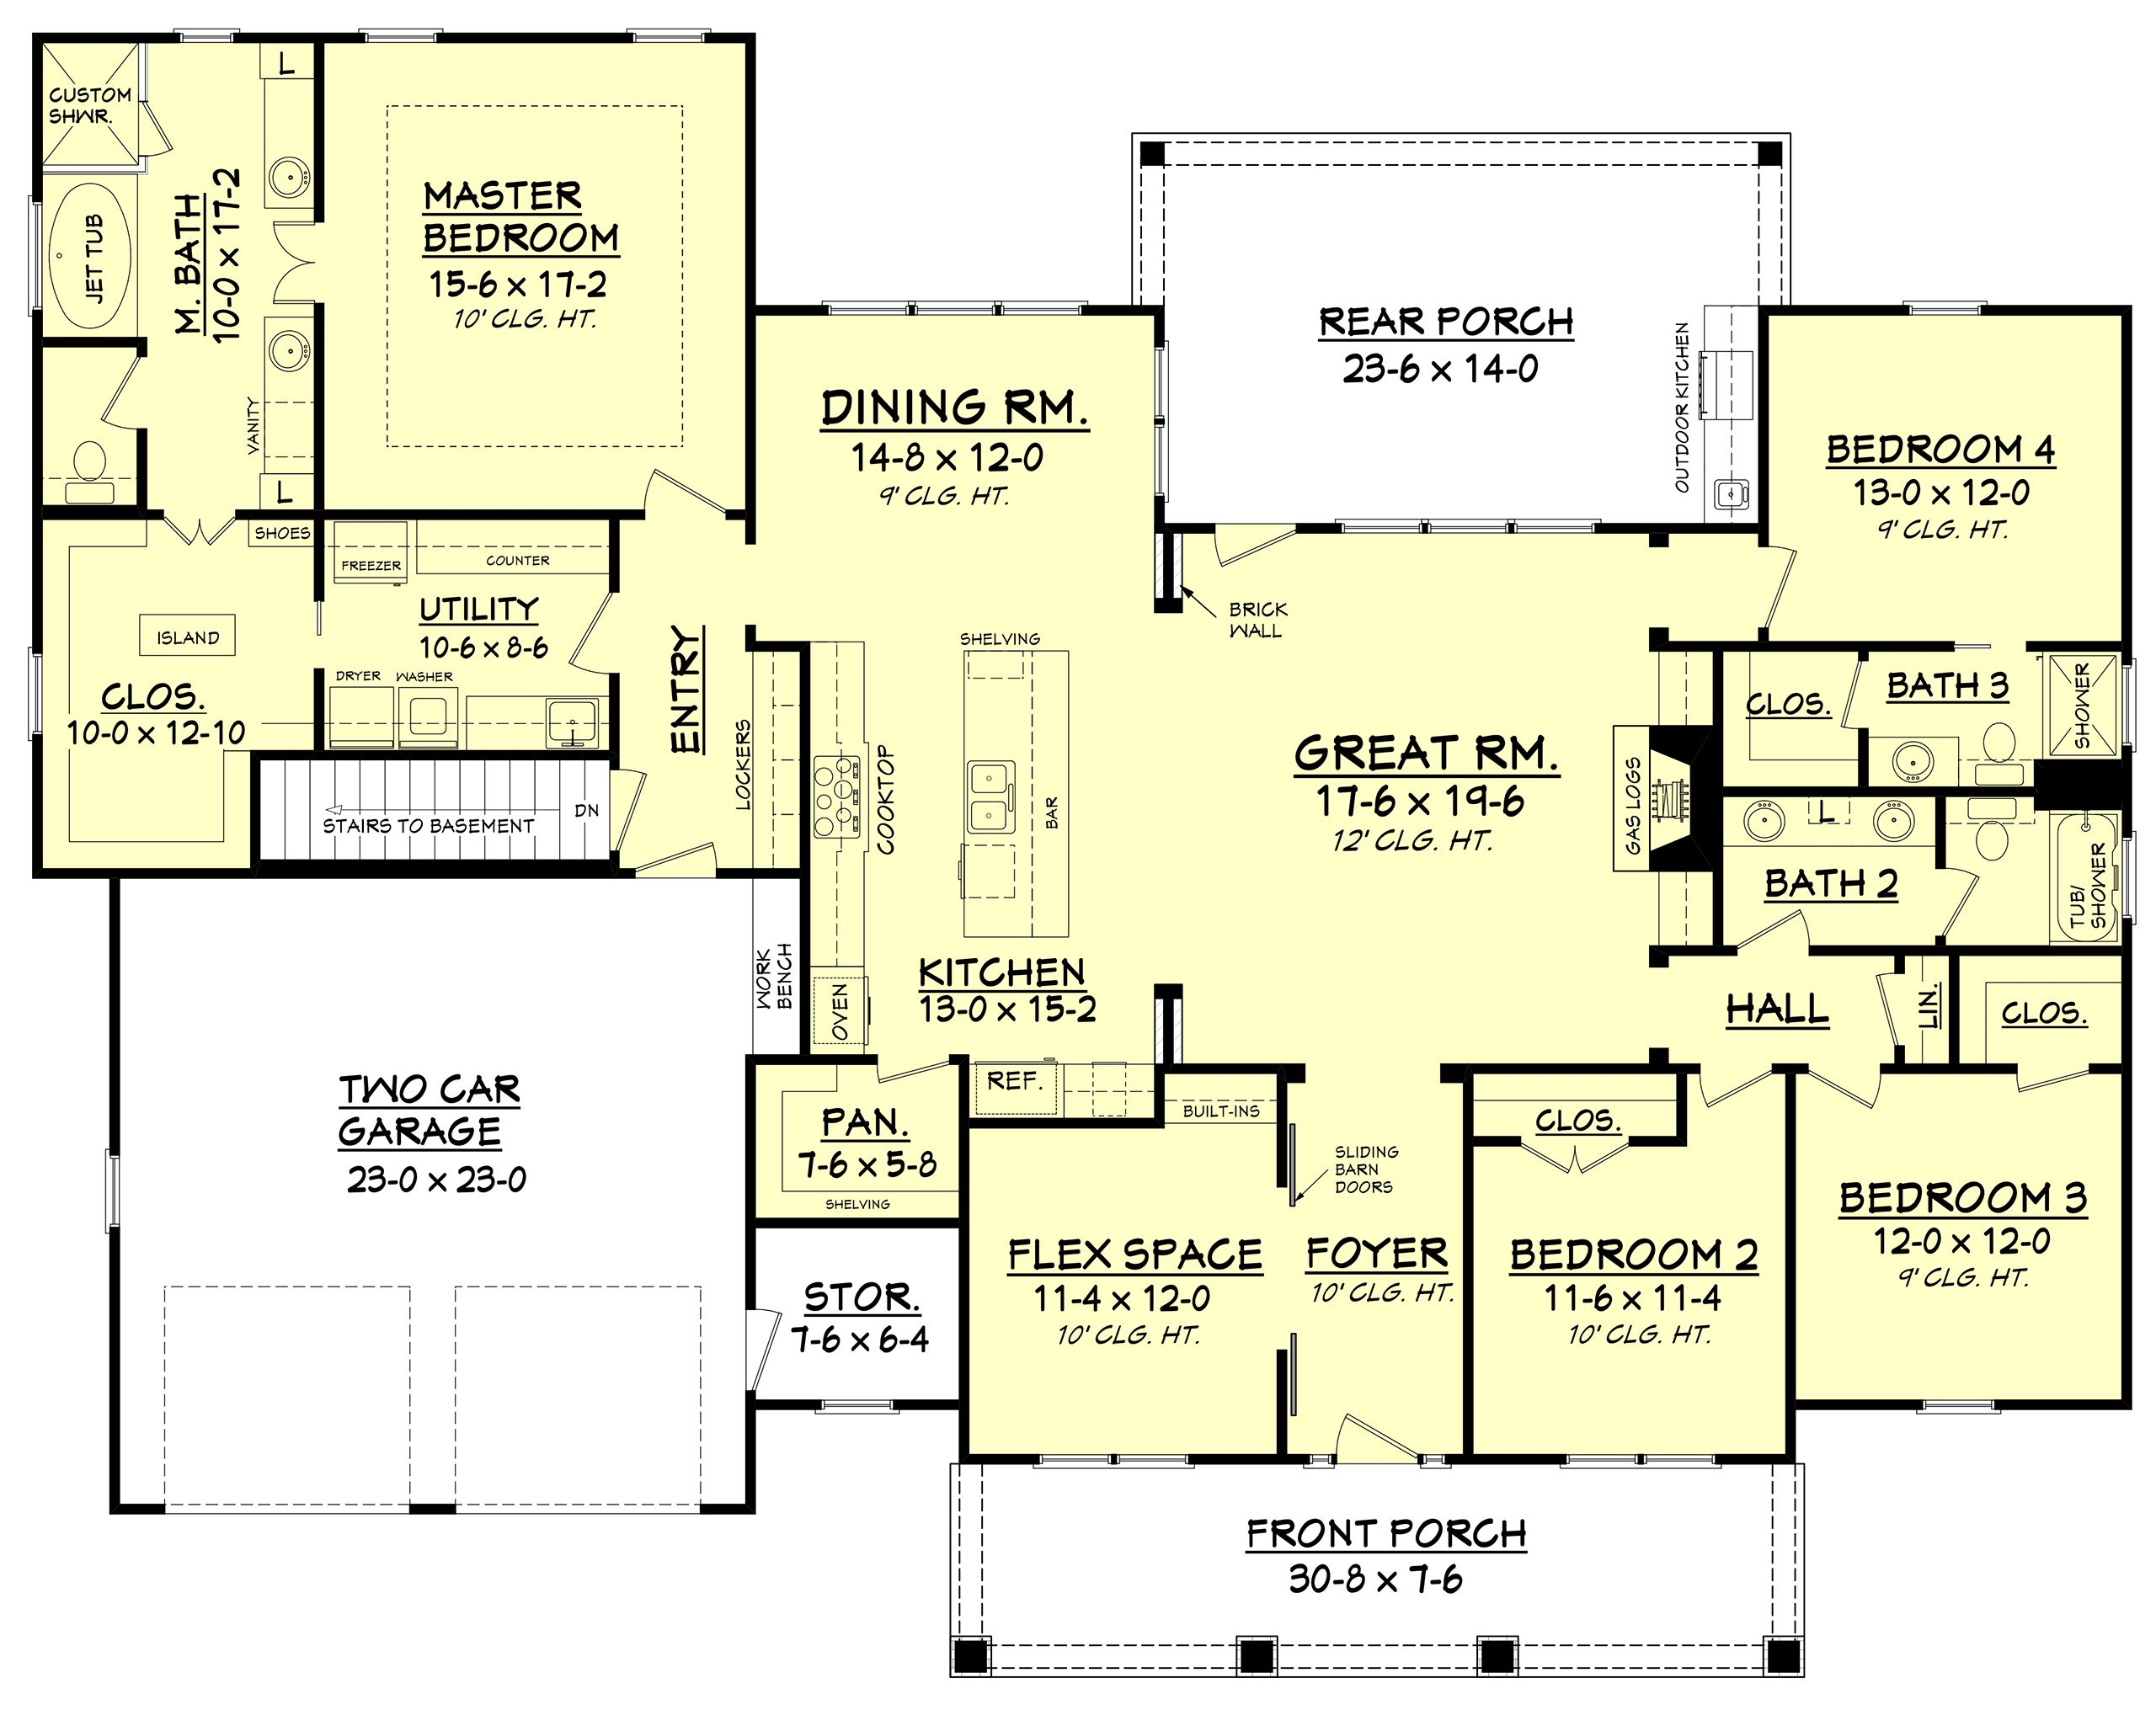 Craftsman style house plan 4 beds baths 2639 sq ft for All house plans